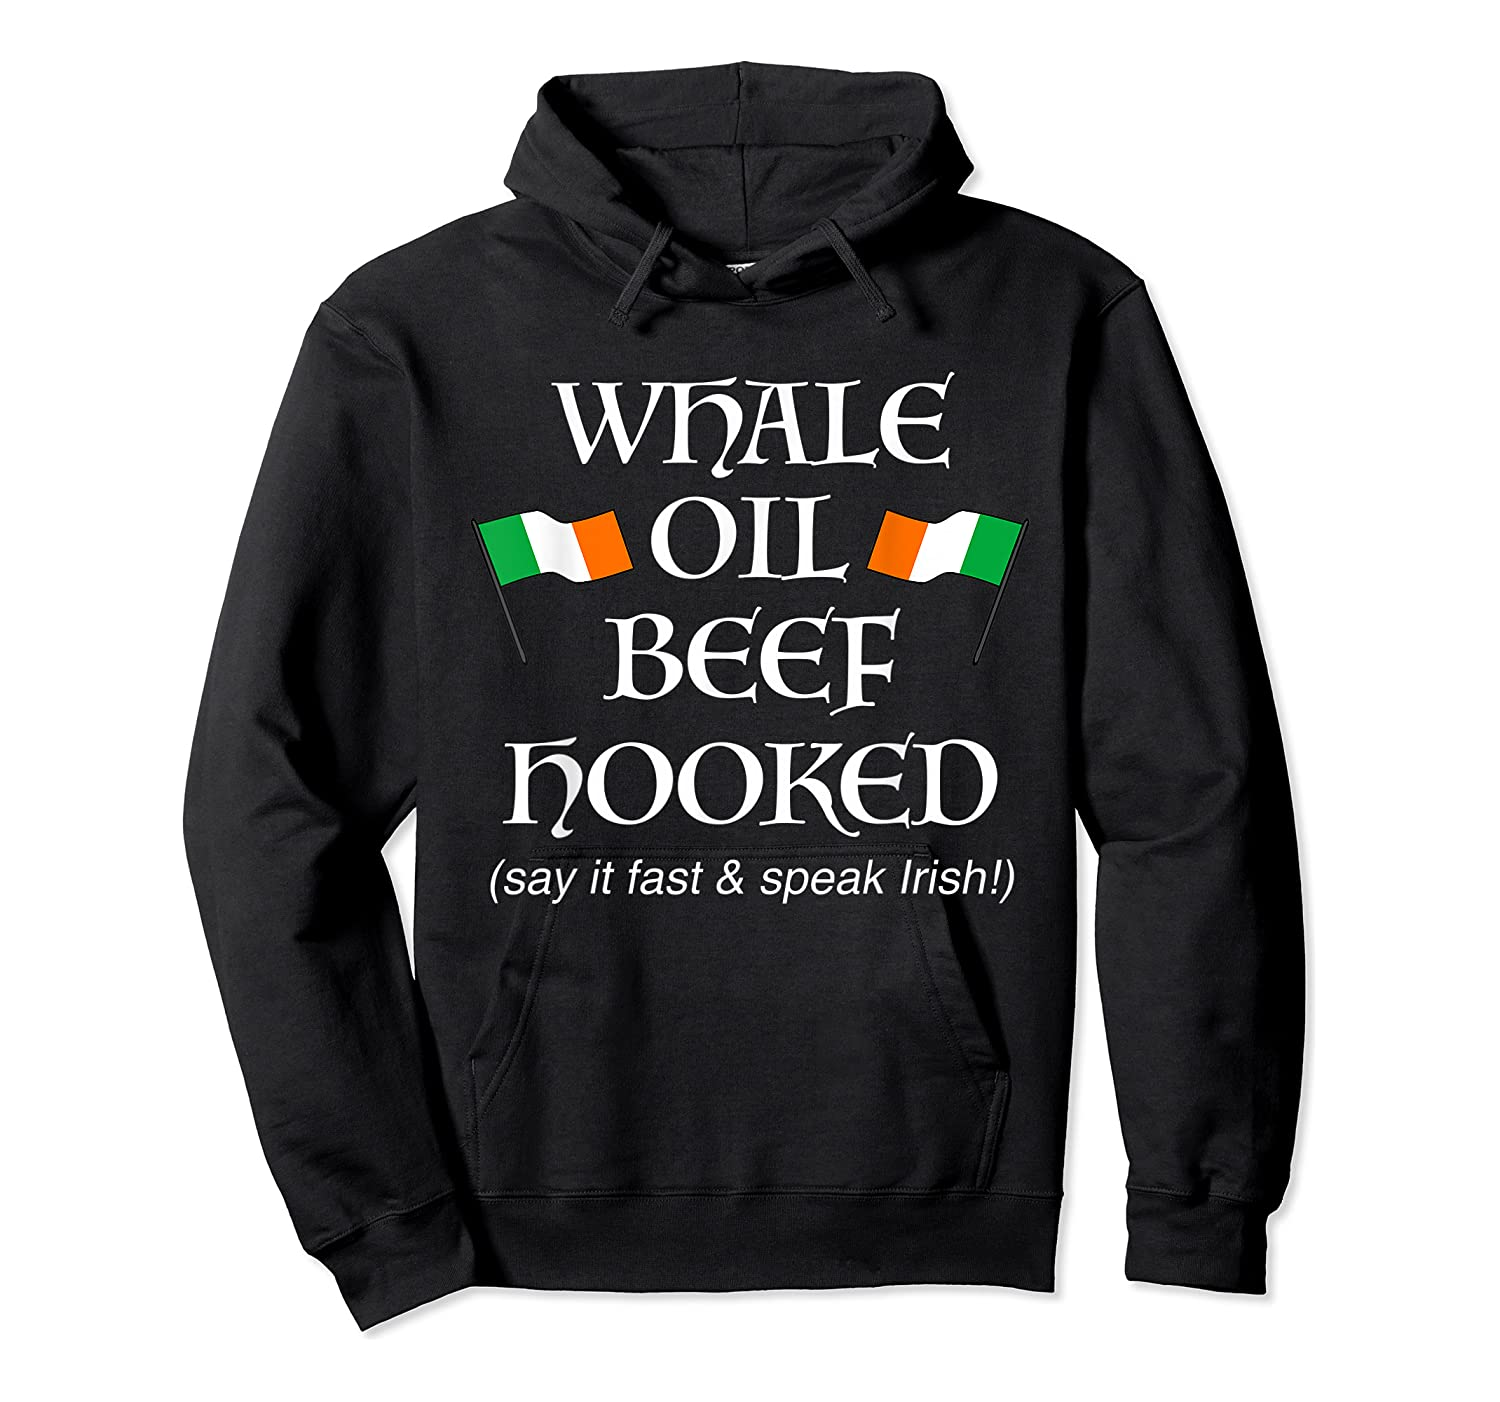 Whale Oil Beef Hooked St Patrick's Day How To Speak Irish Shirts Unisex Pullover Hoodie